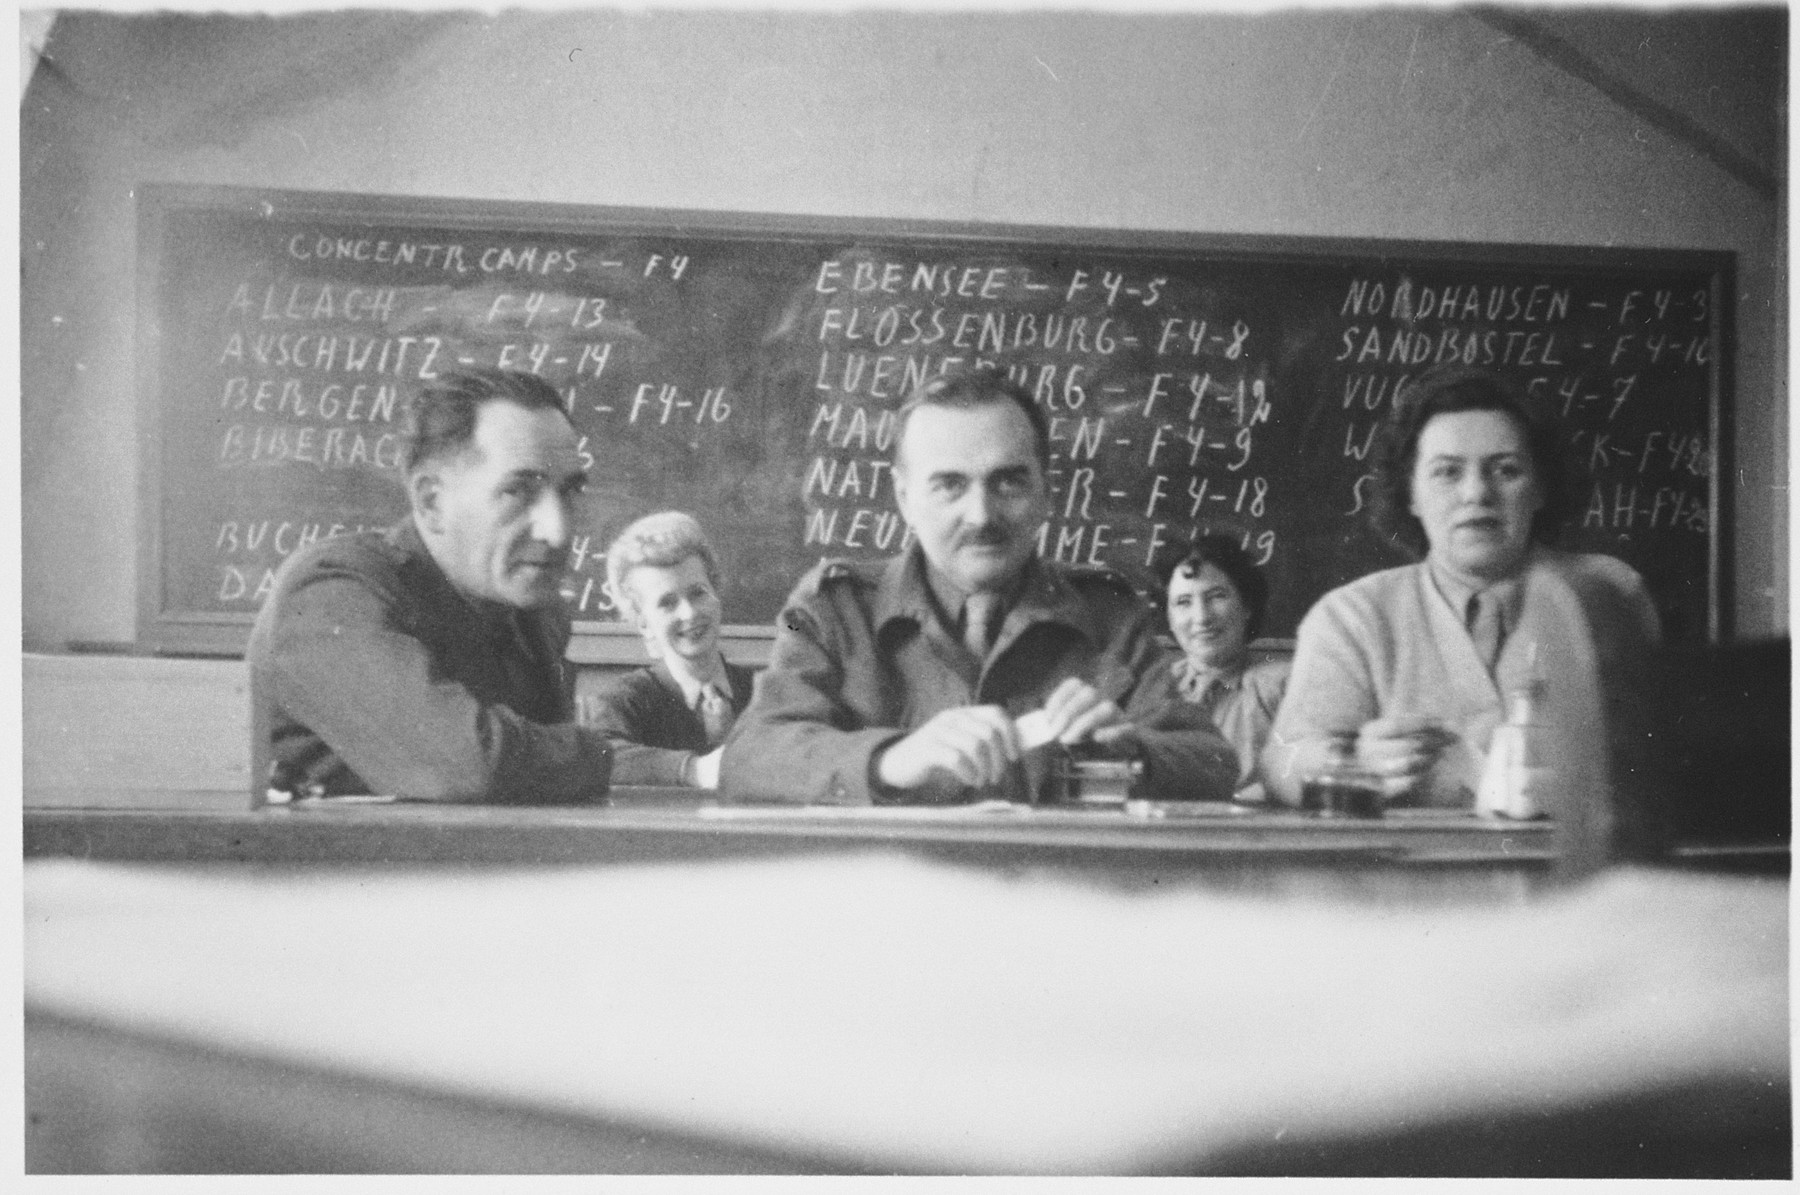 Staff of the UNRRA tracing service sit in front of a blackboard listing the file codes of different concentration camps.